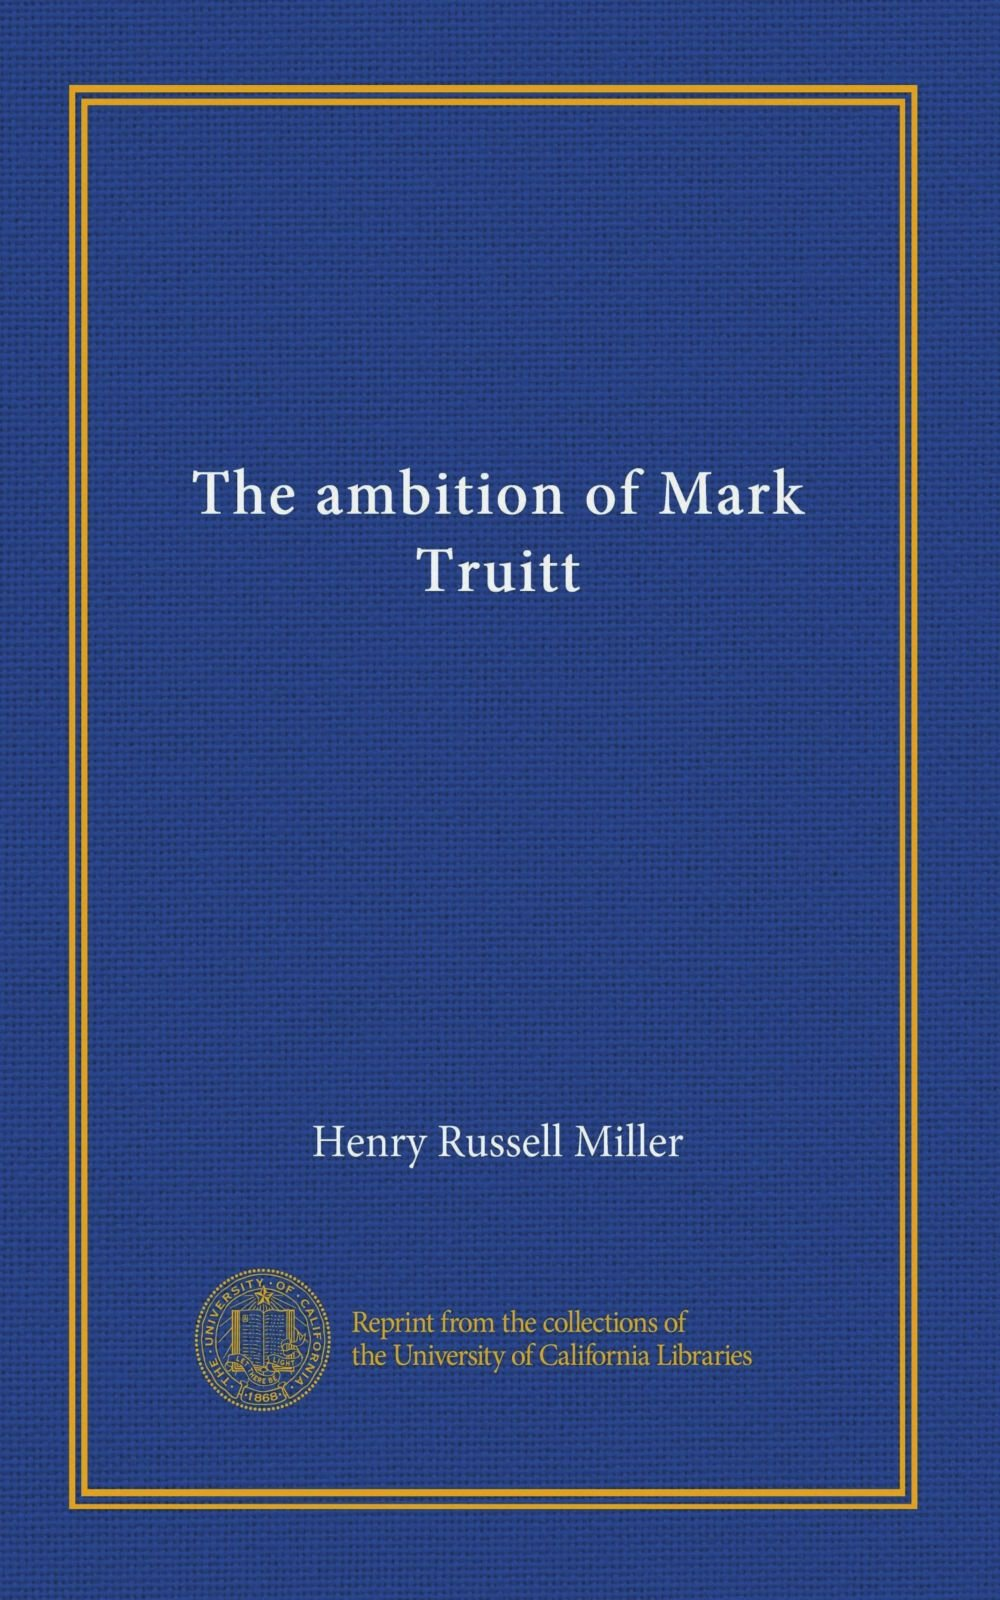 The ambition of Mark Truitt pdf